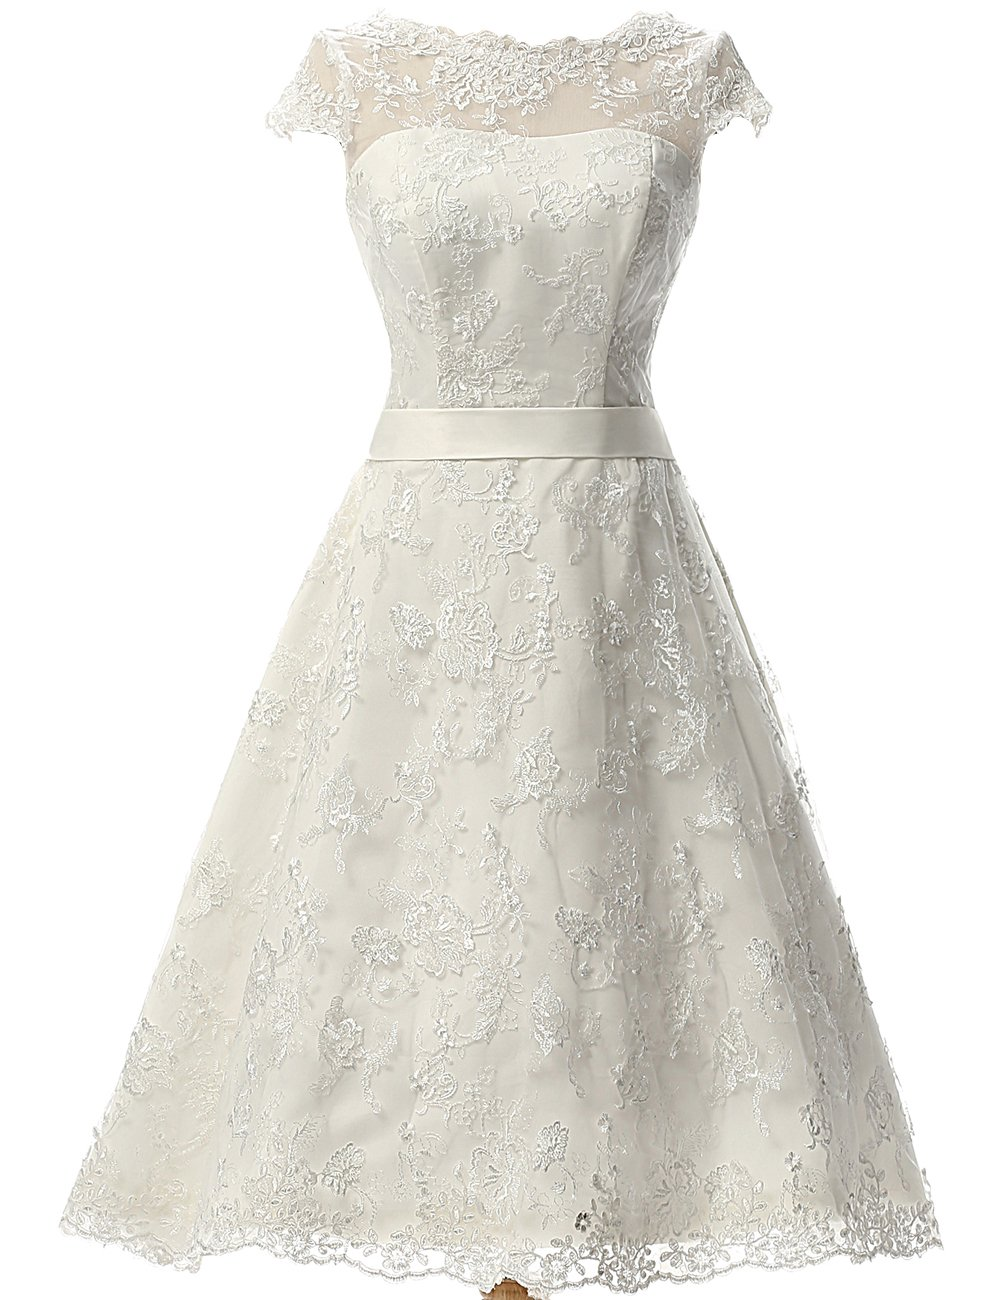 JAEDEN Women's Vintage Lace Wedding Dress Short Bridal Gown Dresses With Sash White US8